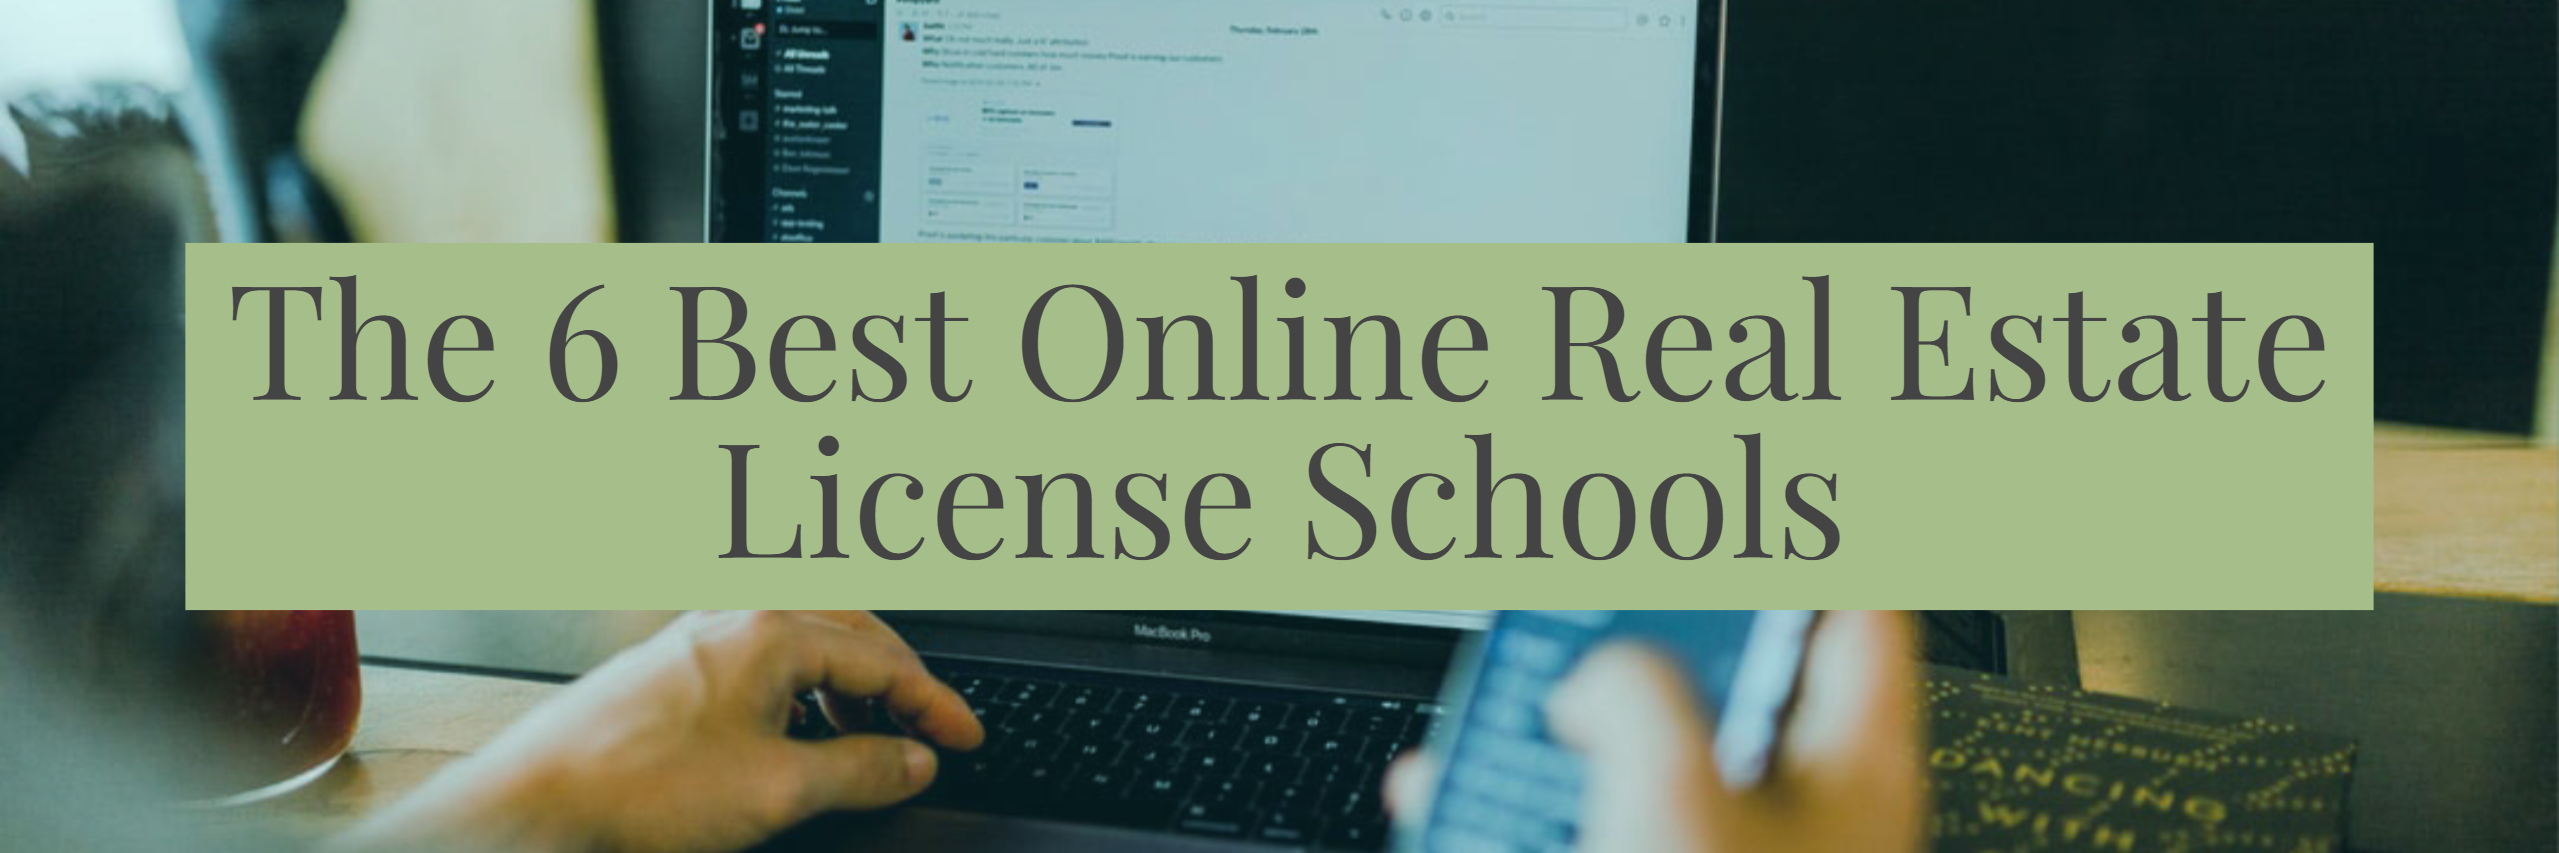 The 6 Best Online Real Estate License Schools